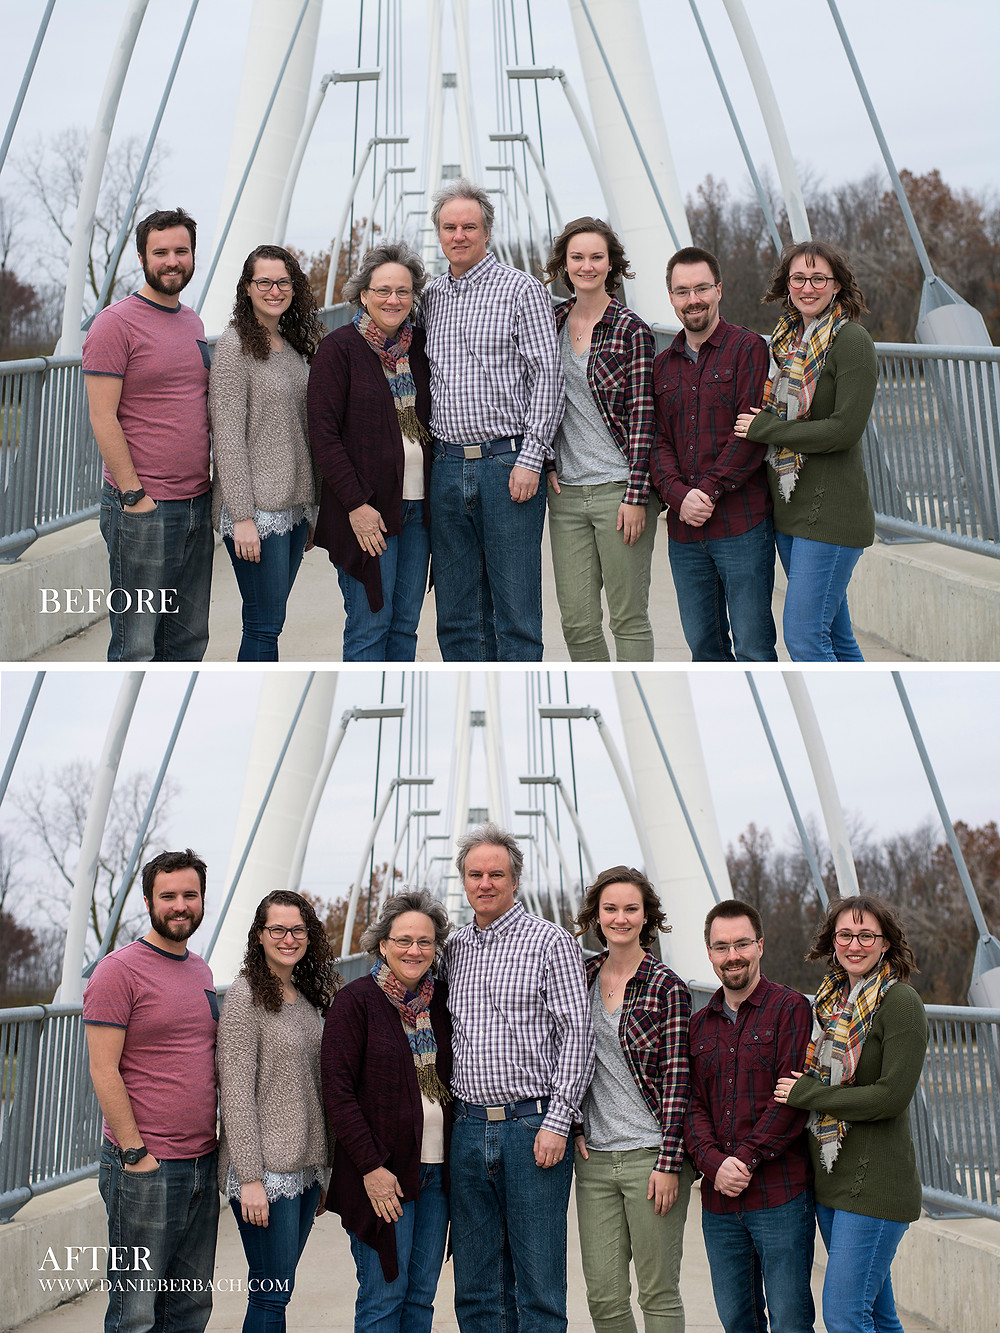 Before and After: Family Portrait on Bridge